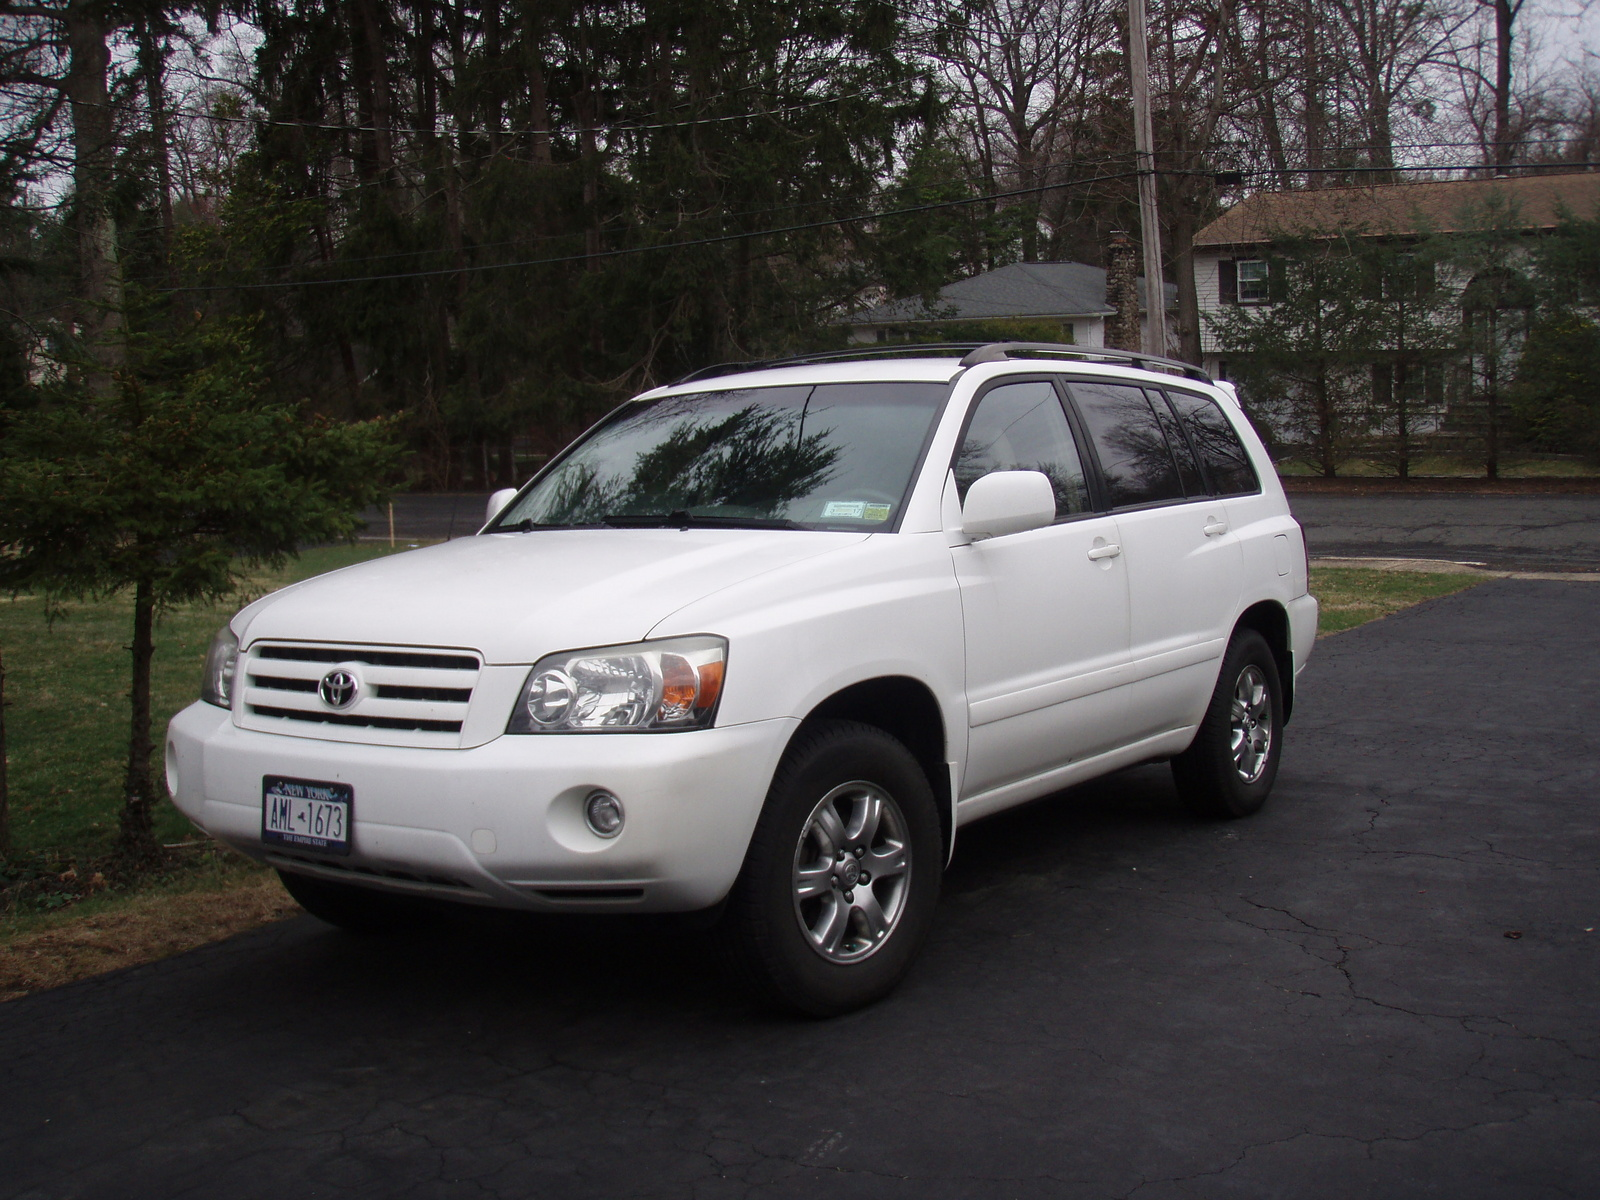 Toyota Highlander 3.3 2005 photo - 4